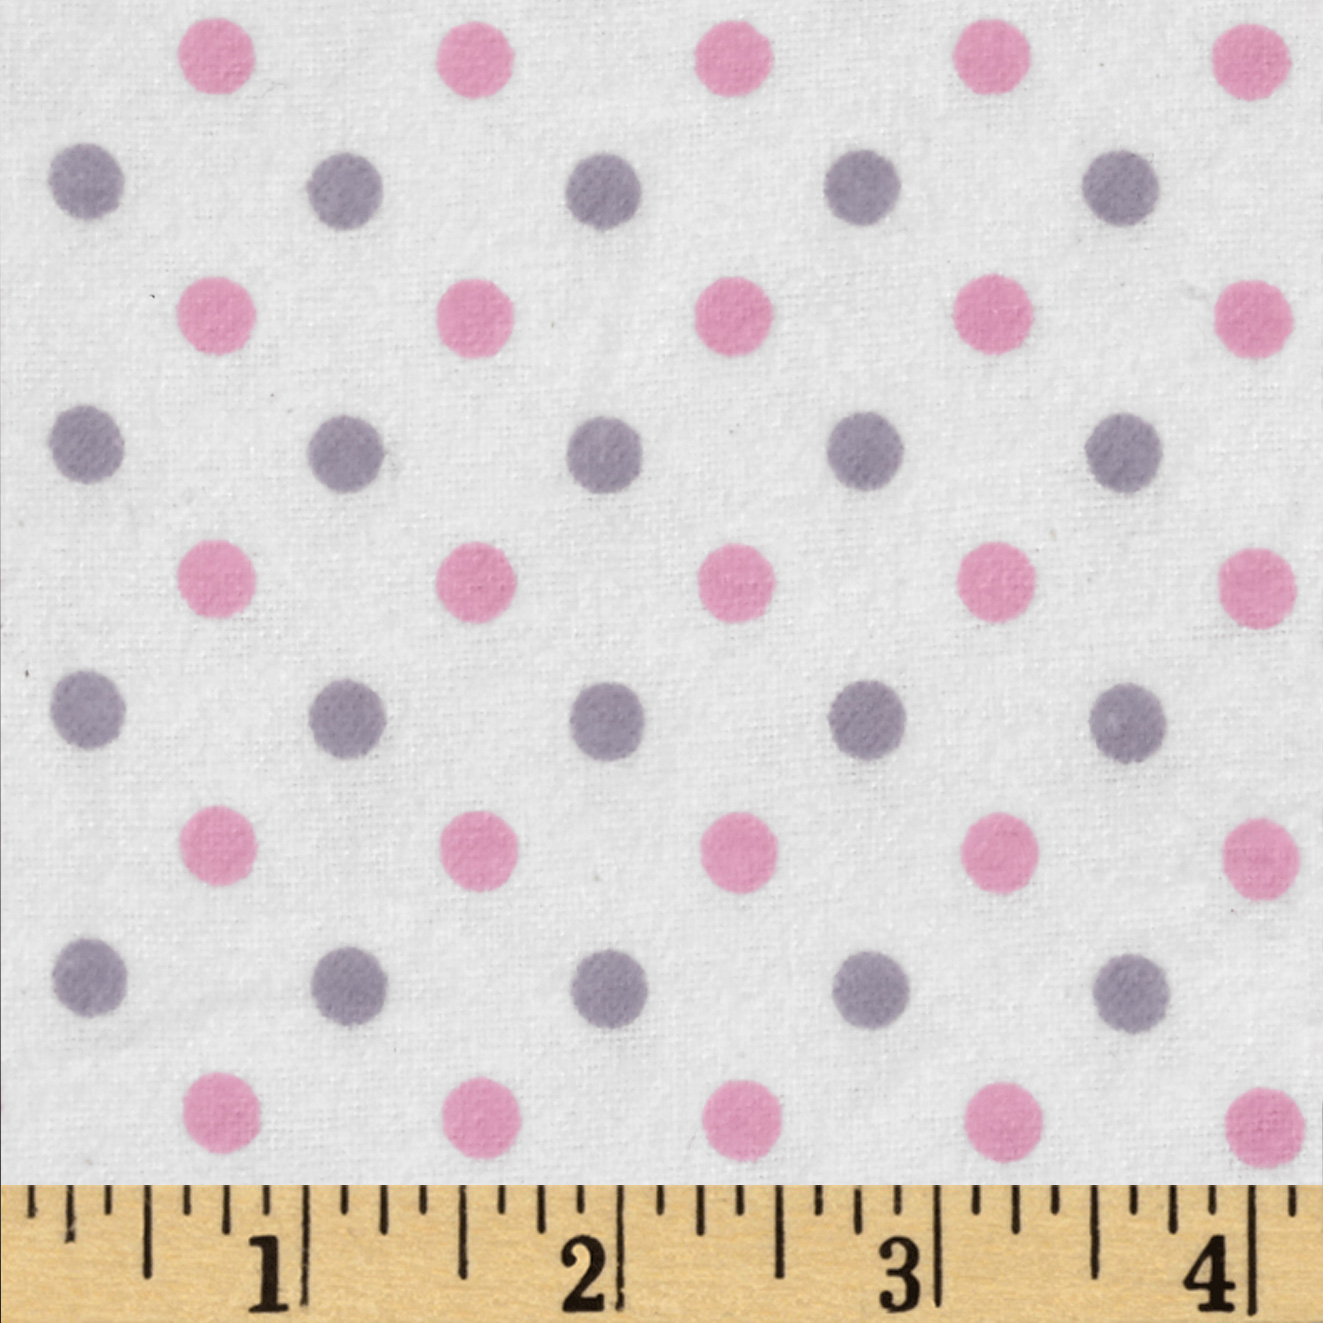 Flannelland Simply Dots White/Pink Fabric By The Yard by David in USA